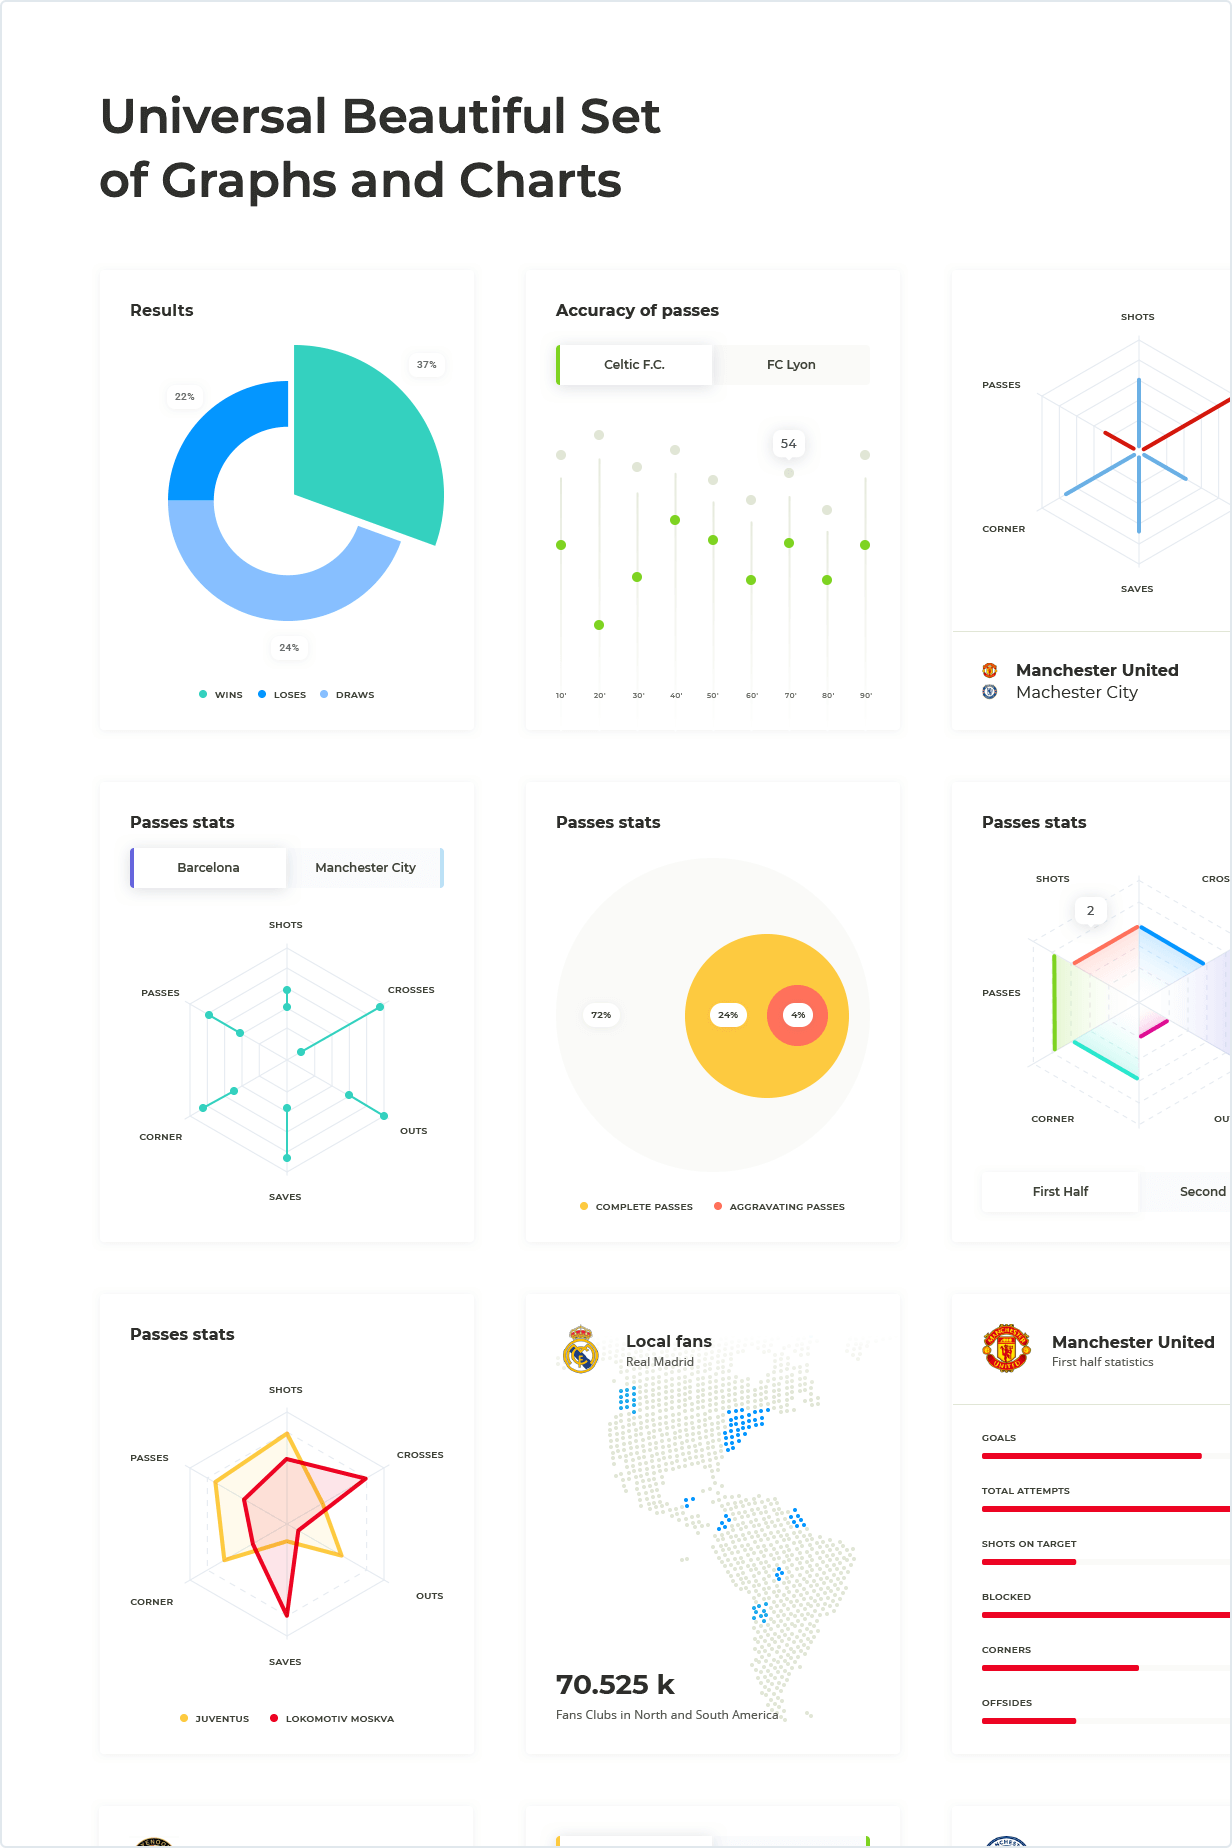 Universal Beautiful Set of Graphs and Charts